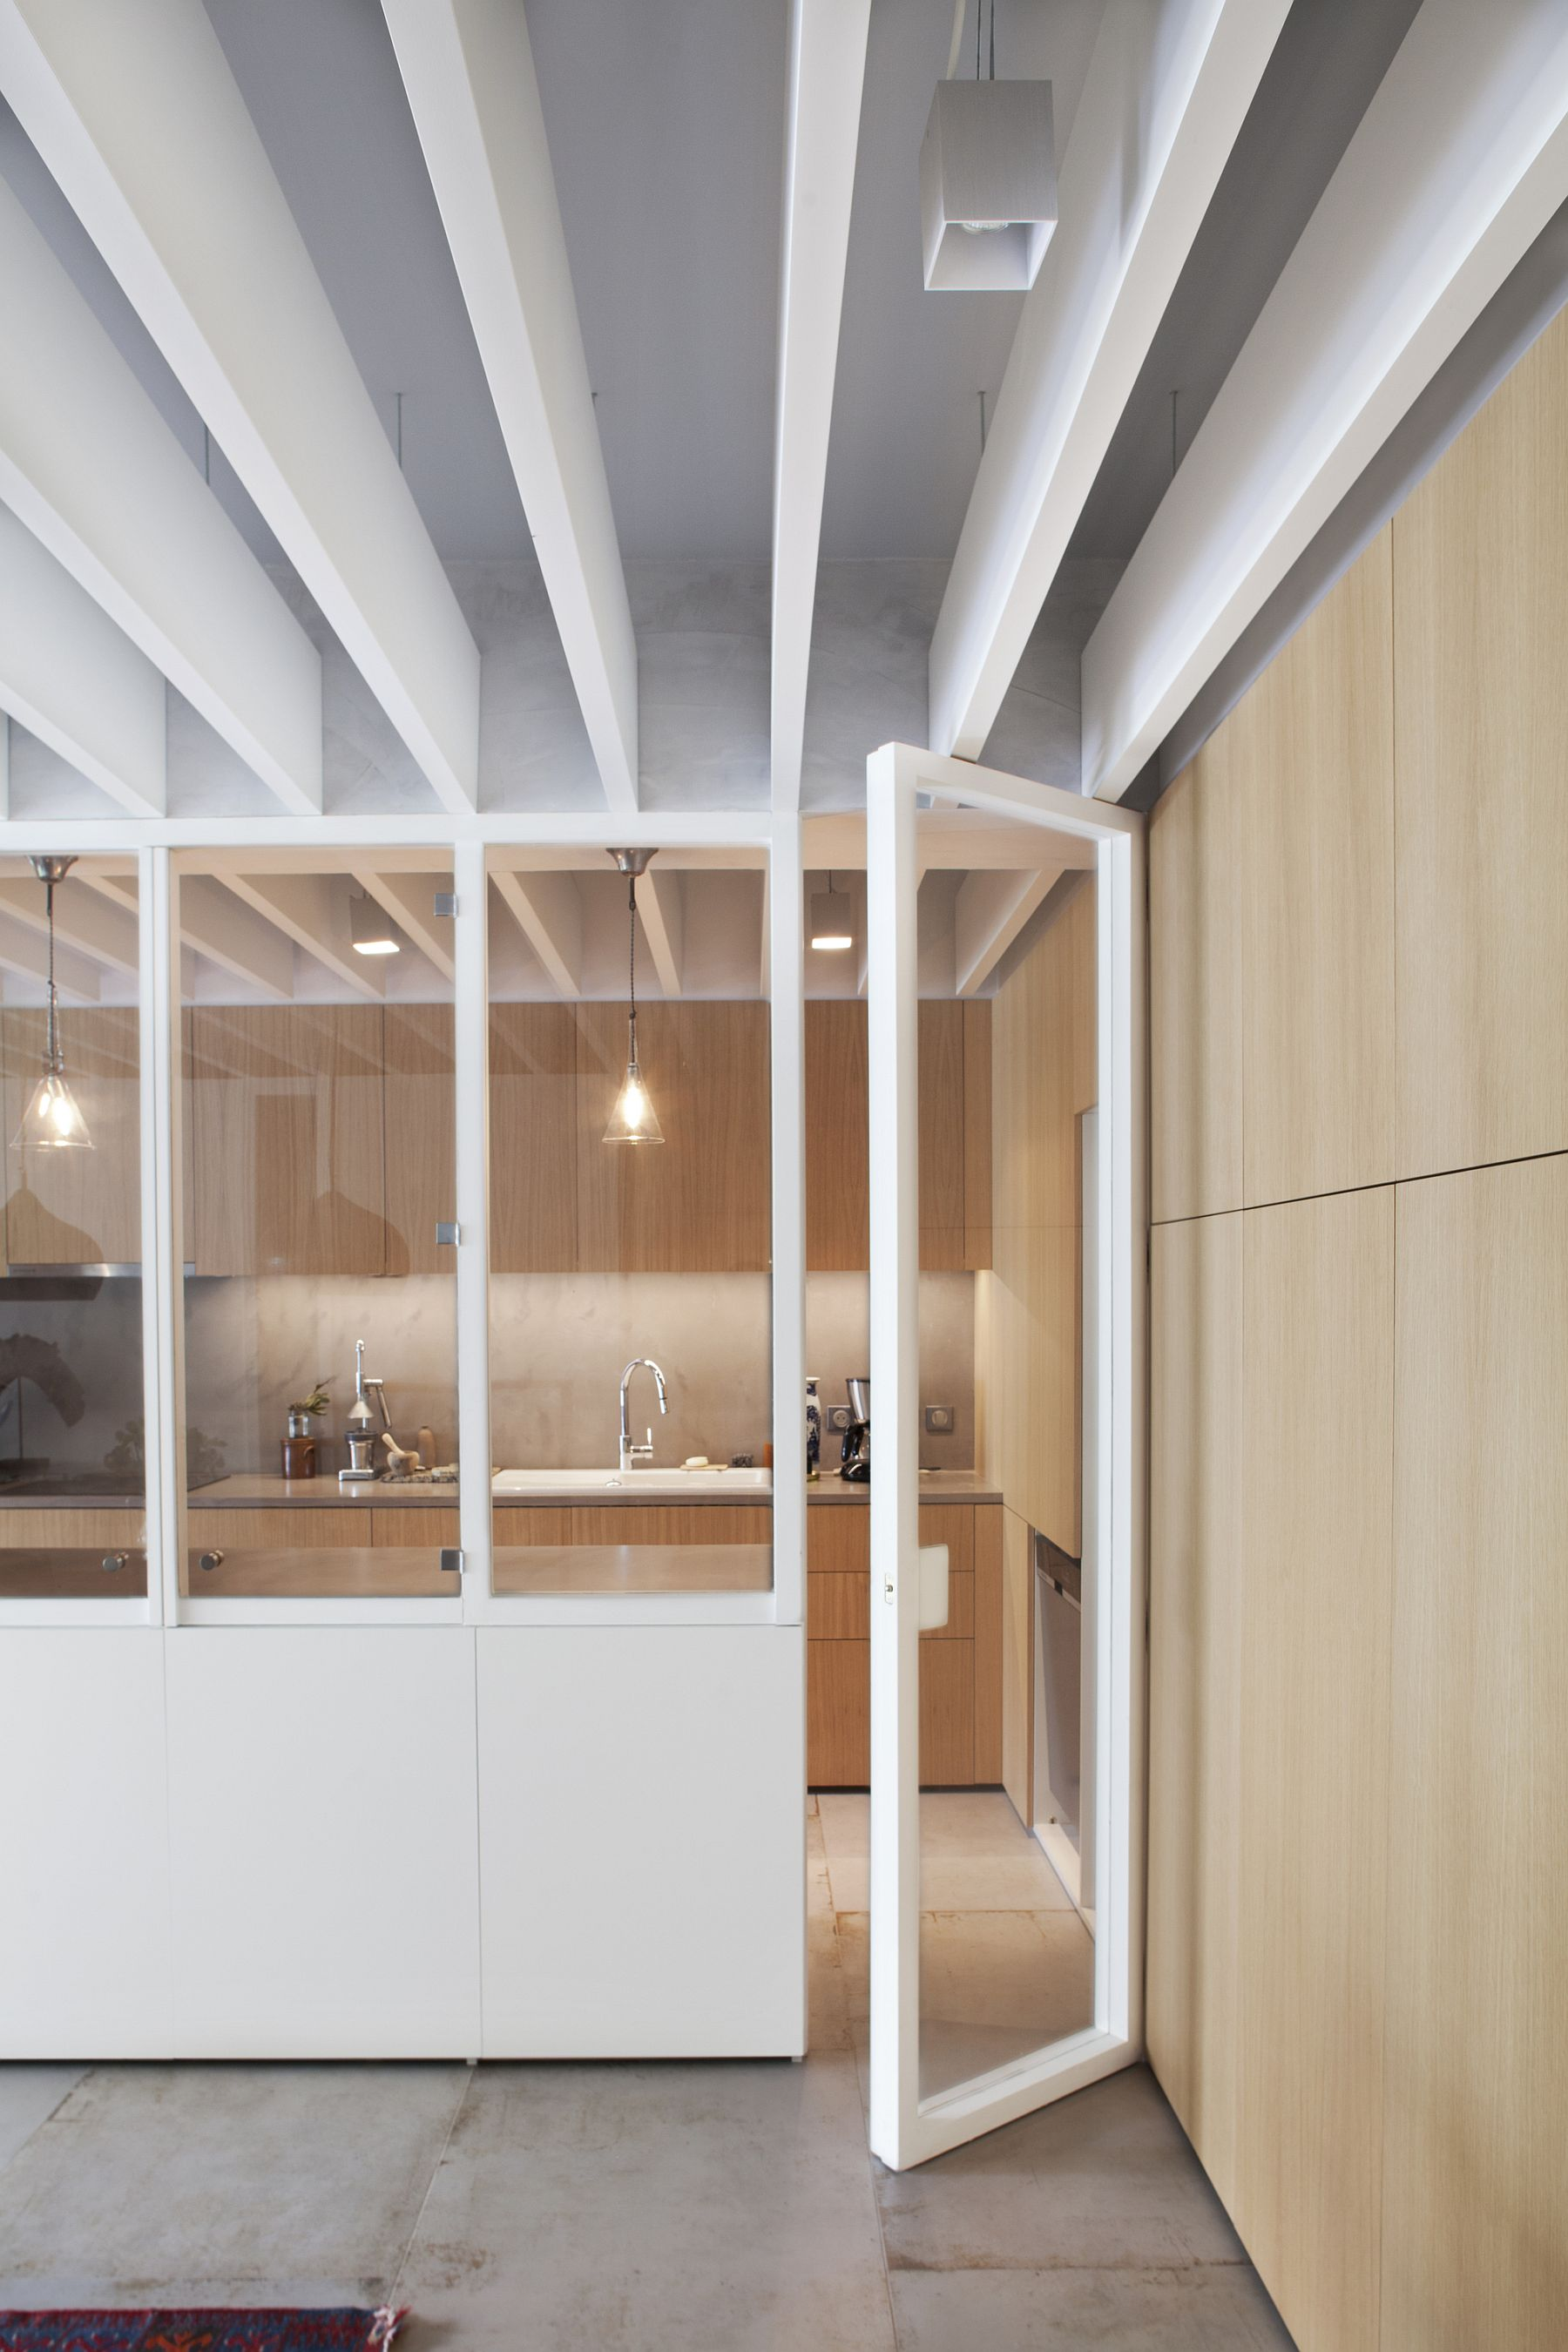 Glass doors and walls allow for unobstructed flow of natural light